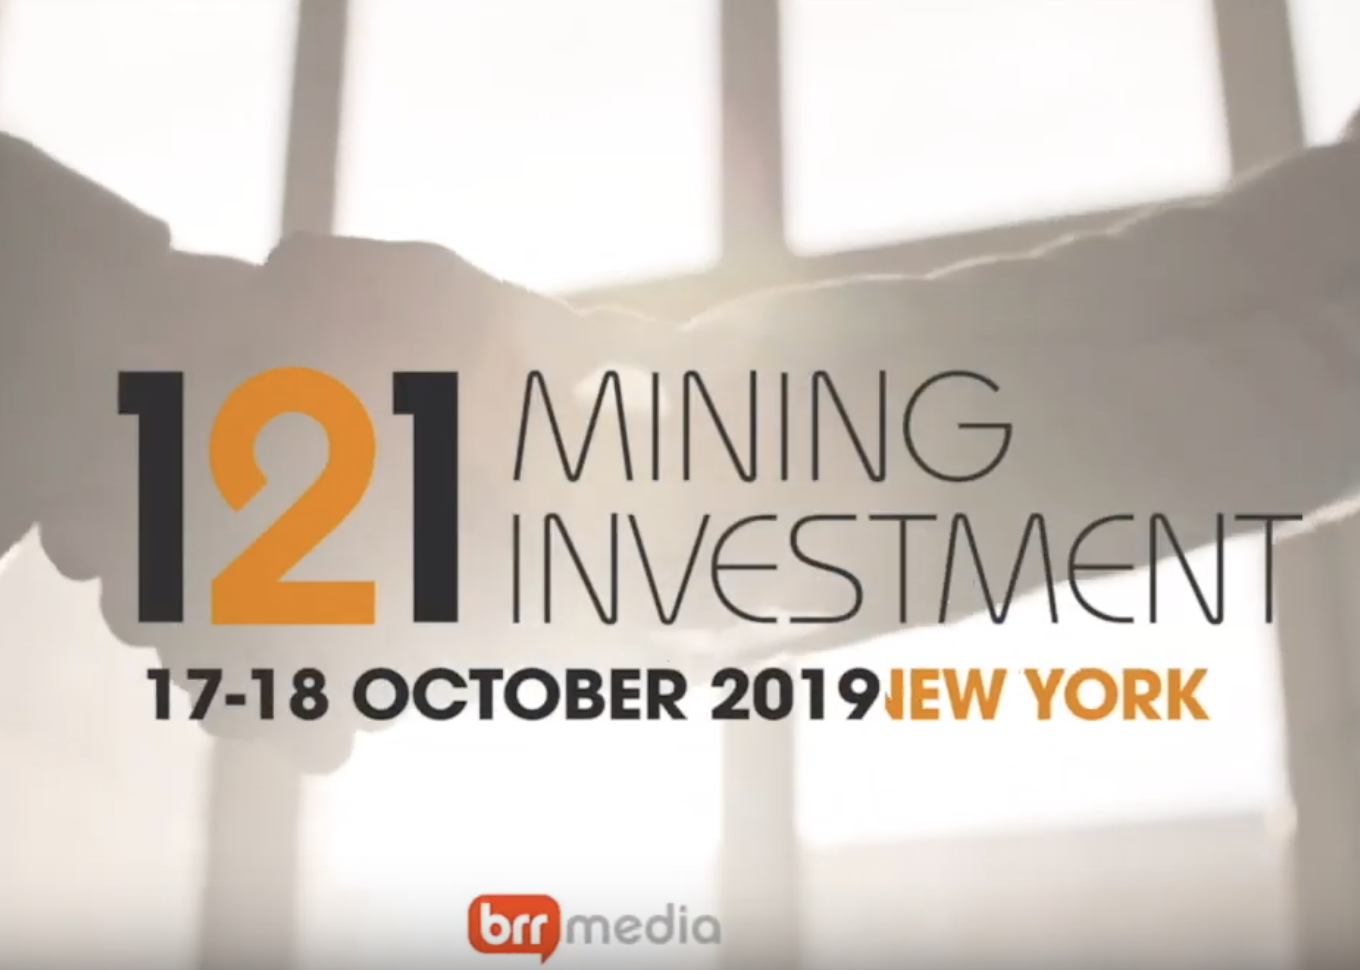 Interview: Brian Wesson, Nordic Gold – 121 Mining Investment New York Autumn 2019